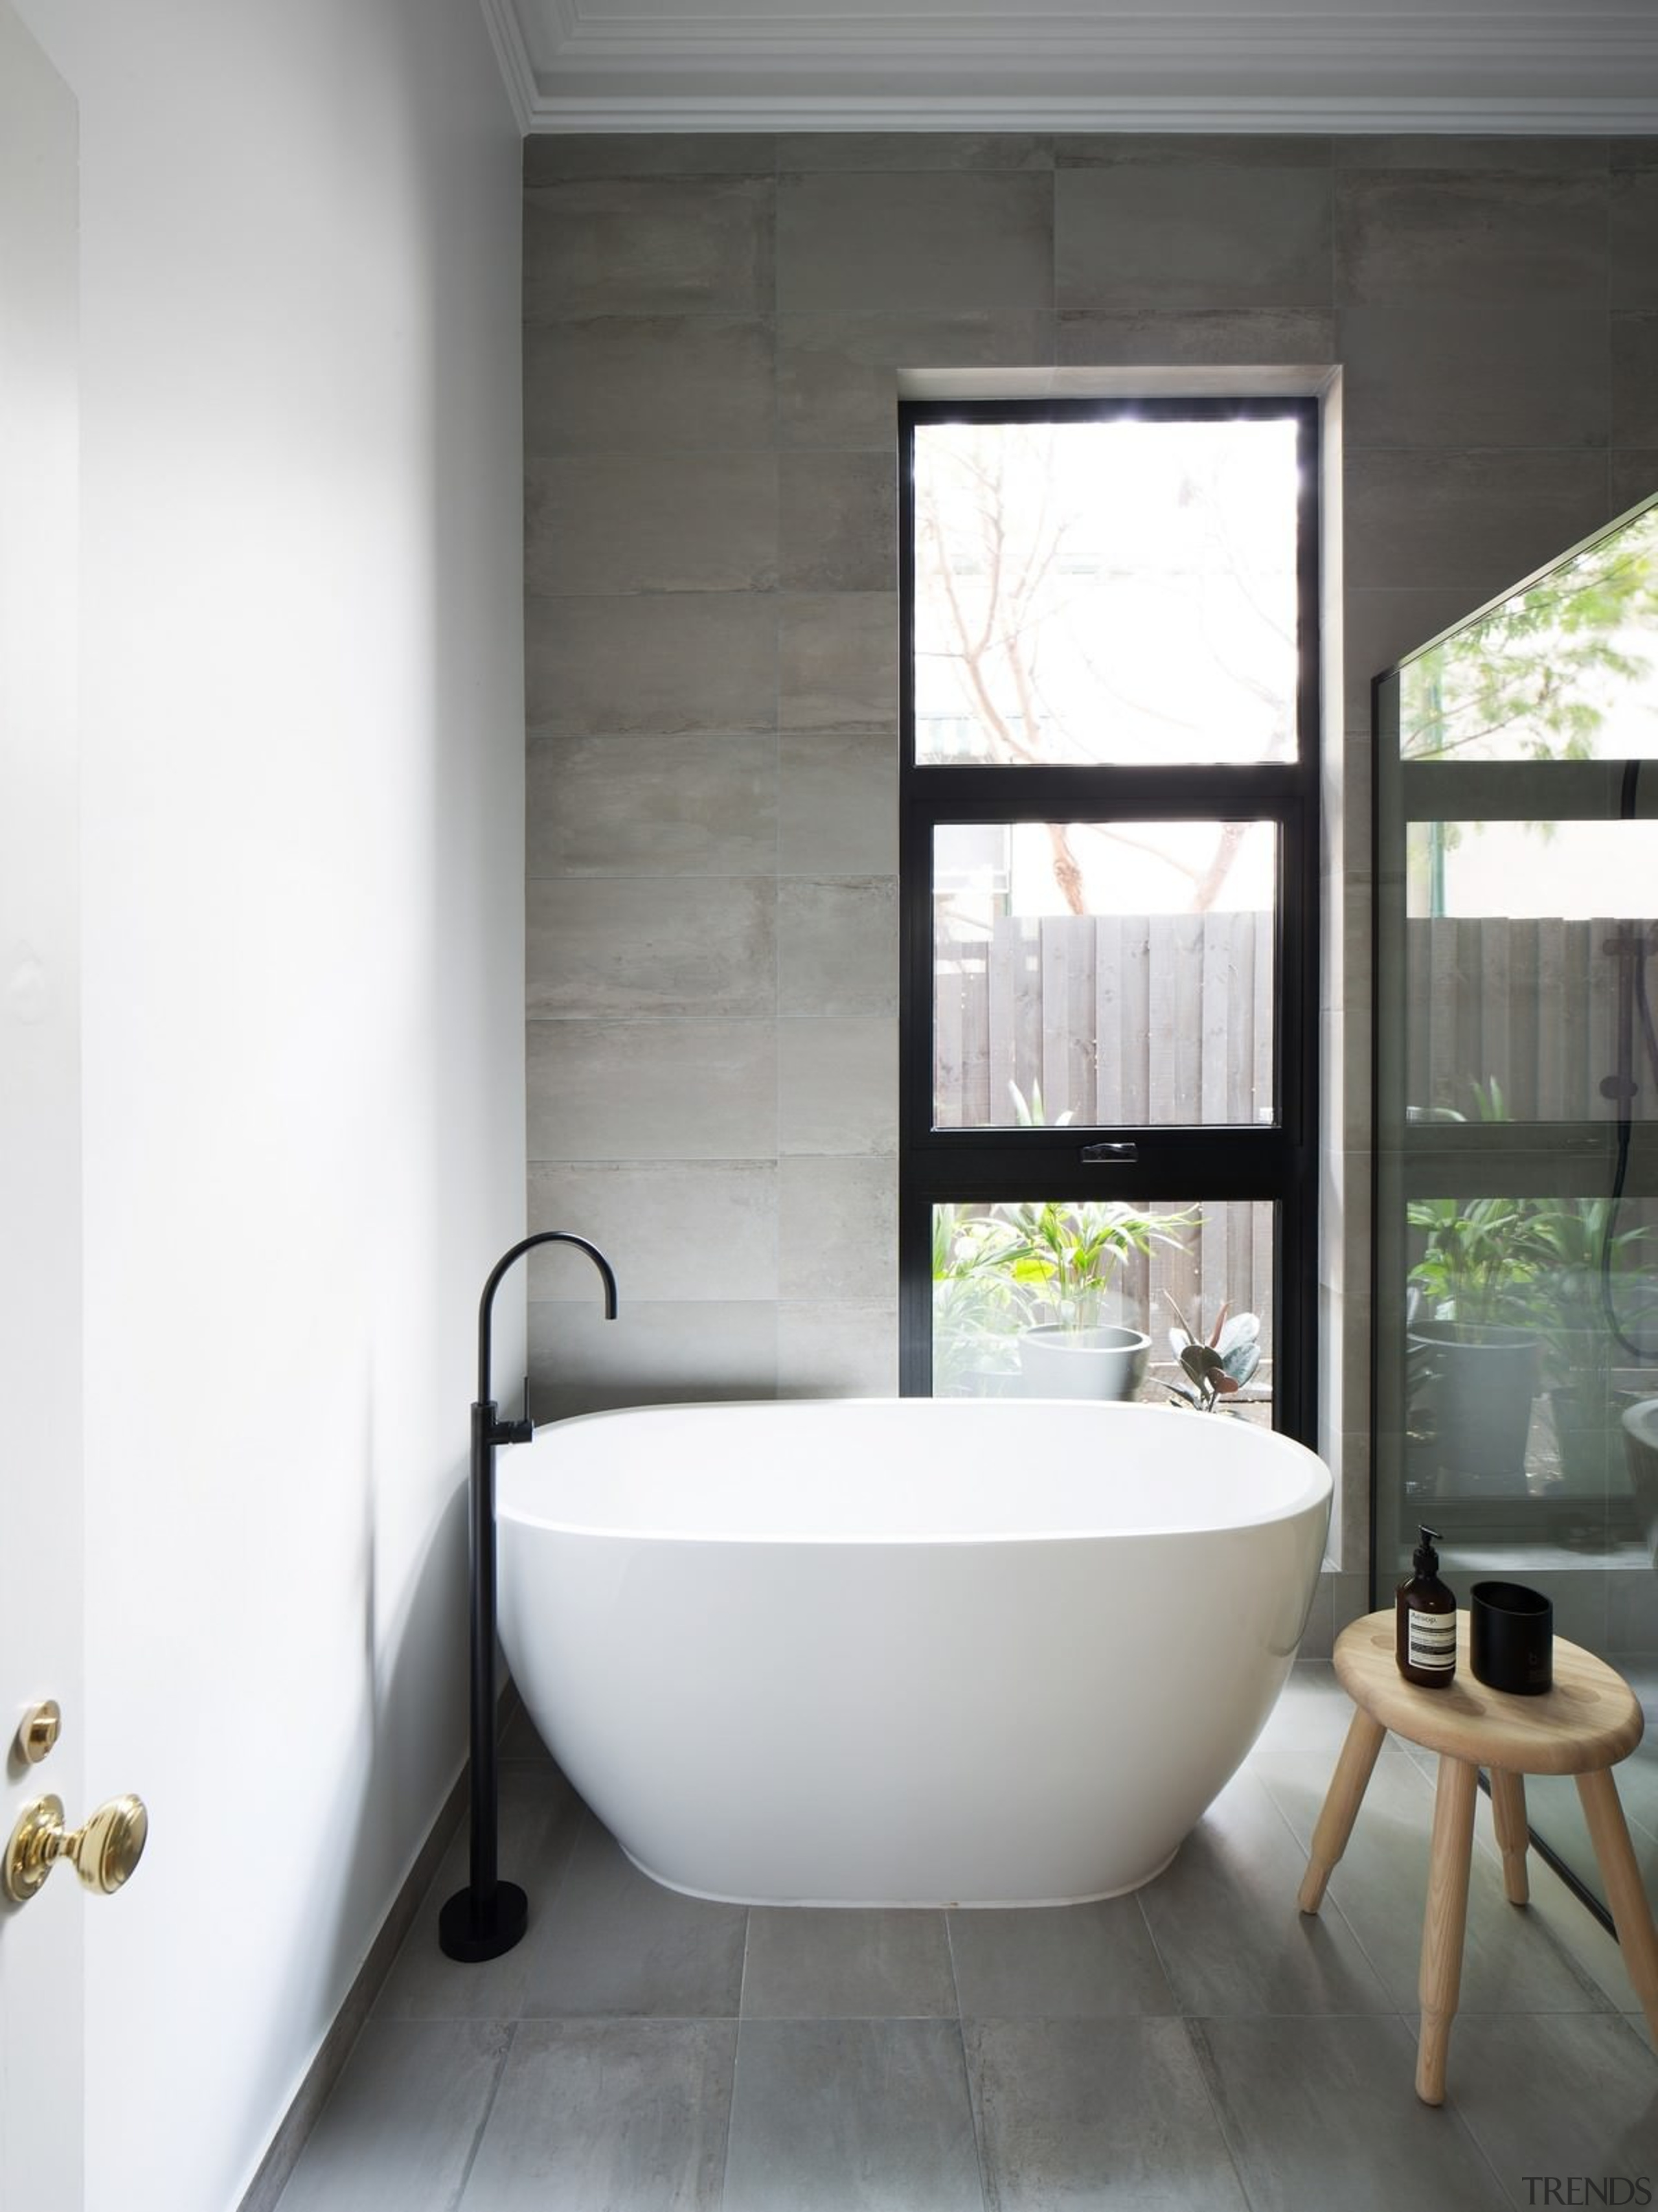 The designer used the same tiles on the architecture, bathroom, floor, home, house, interior design, plumbing fixture, product design, room, tap, window, white, gray